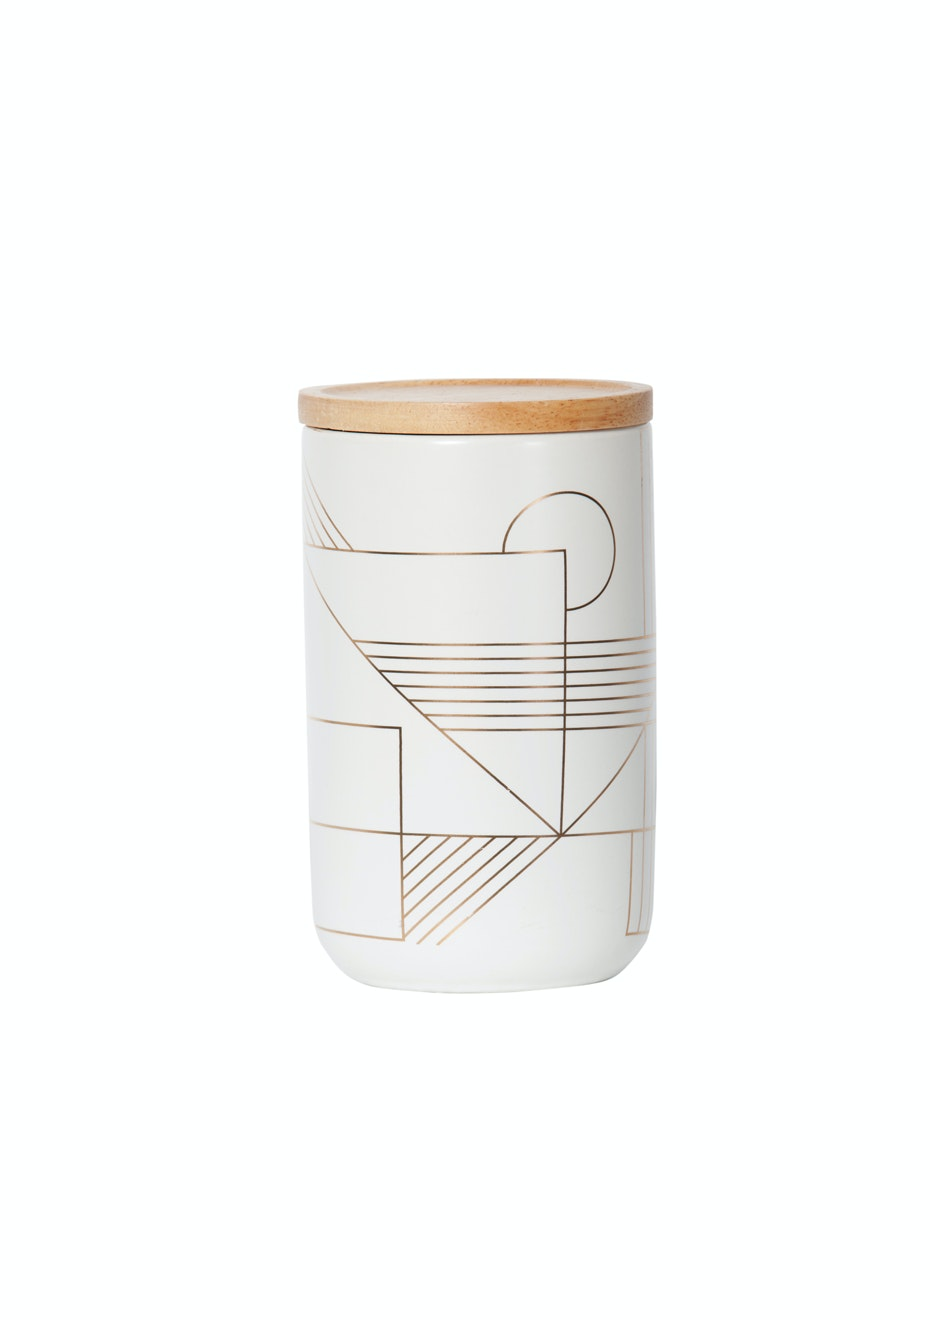 General Eclectic - Tall Canister Gold Deco